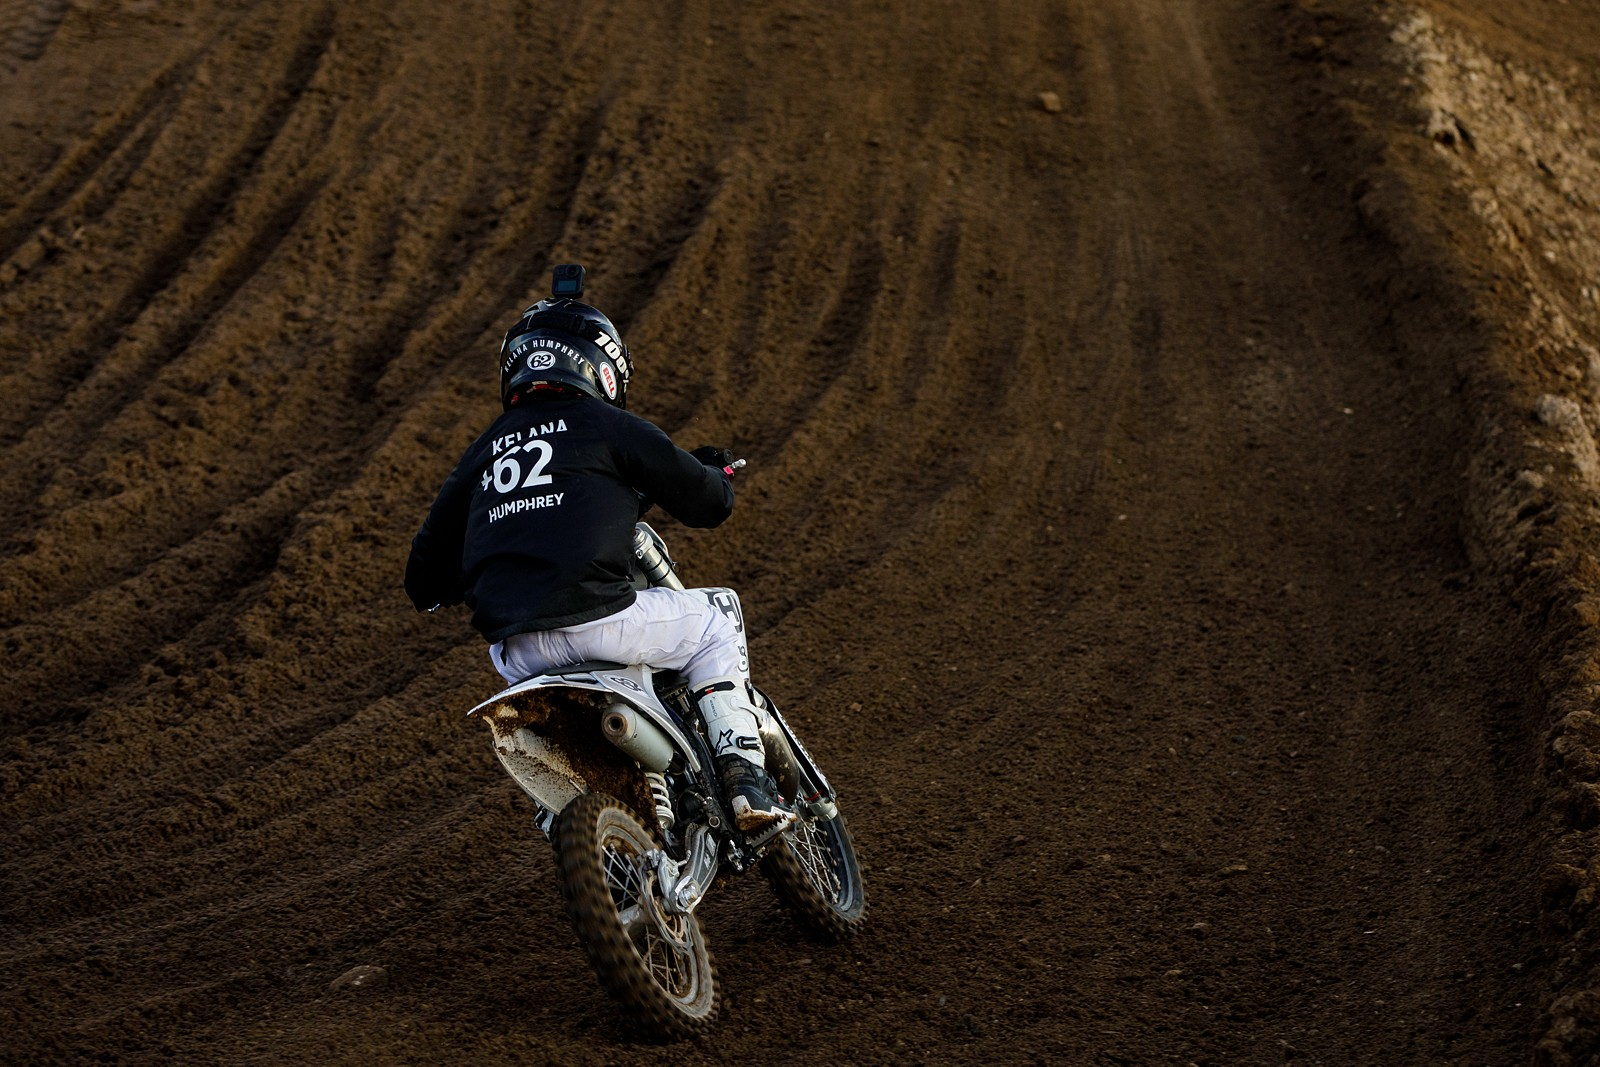 Kelena Humphrey - AZ Open of Motocross, Part 2 - Motocross Pictures - Vital MX